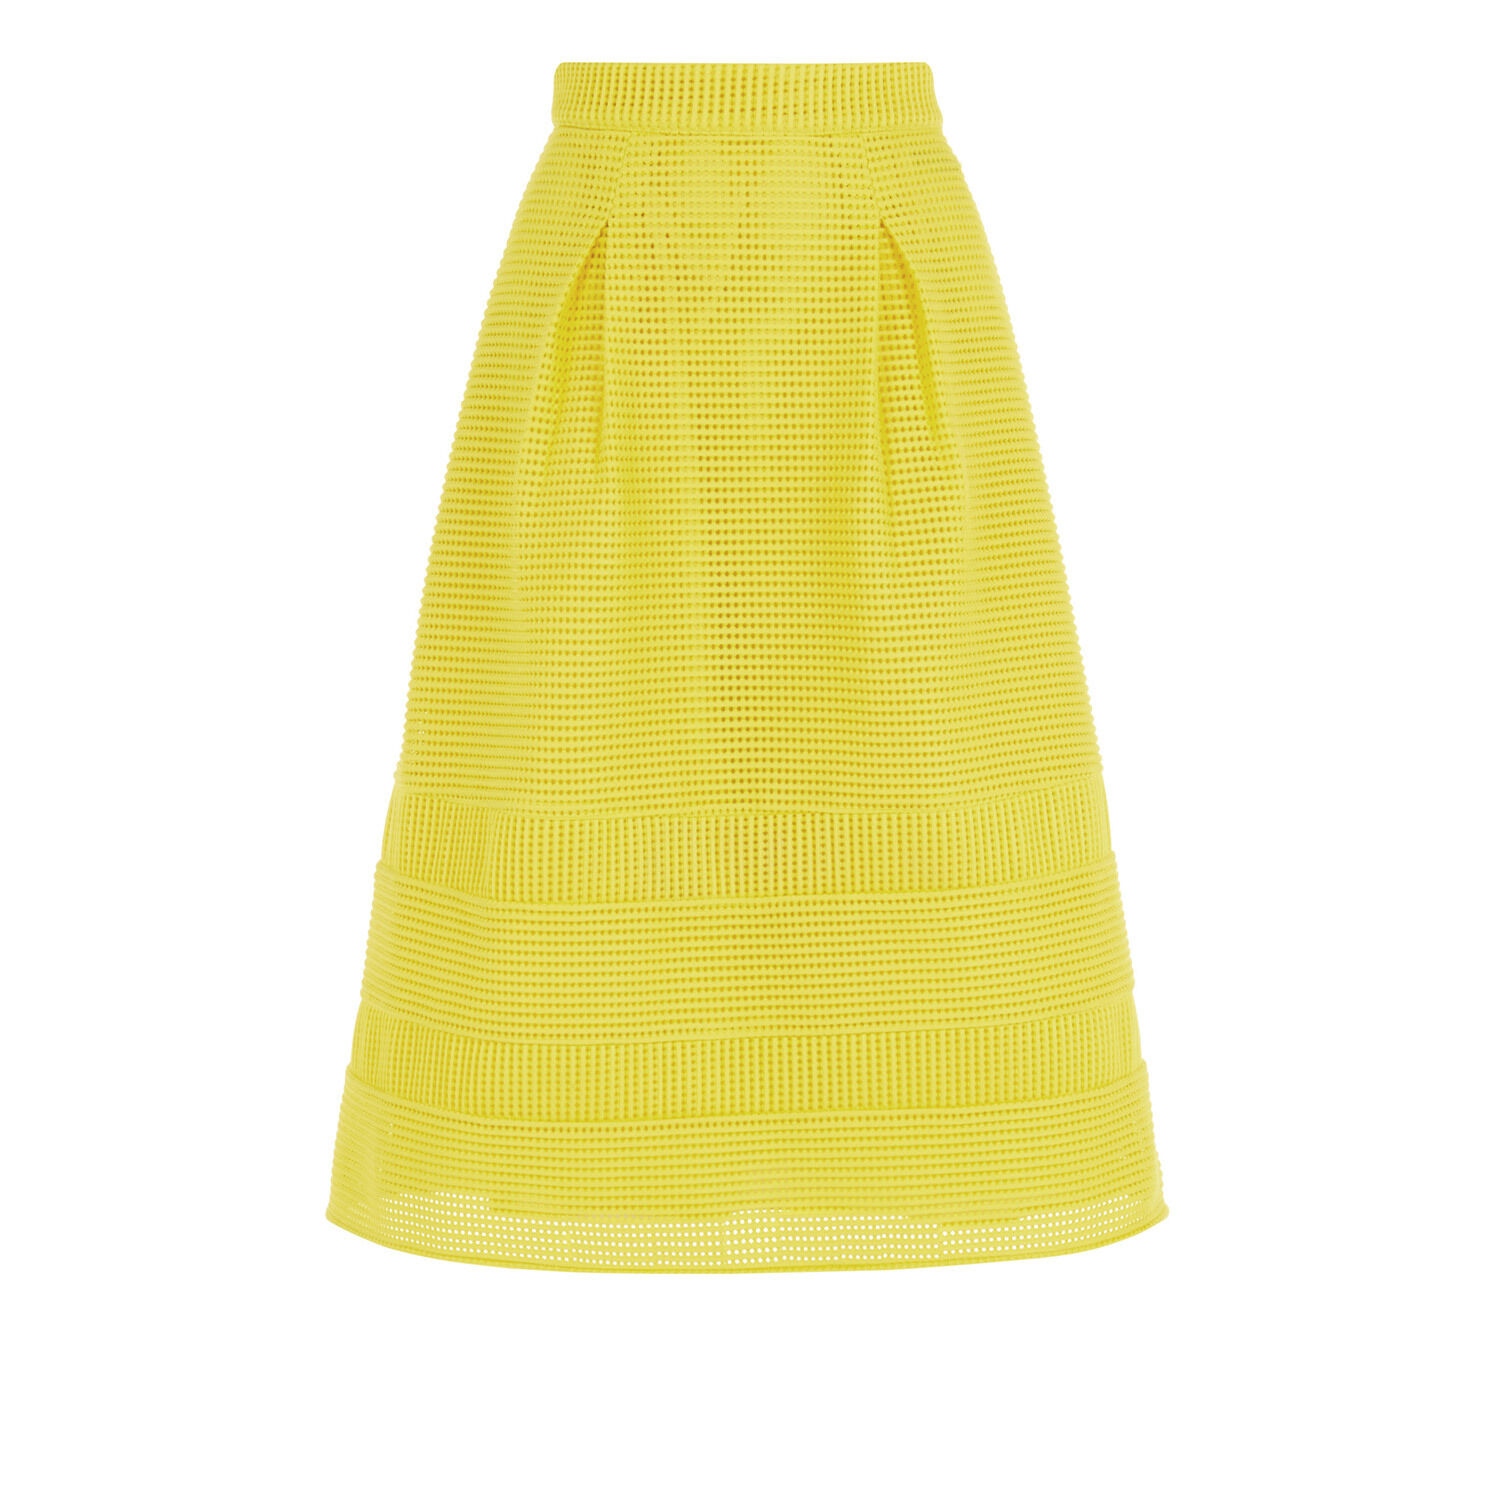 WAREHOUSE Linear Yellow Prom Skirt size 6 - Brand New